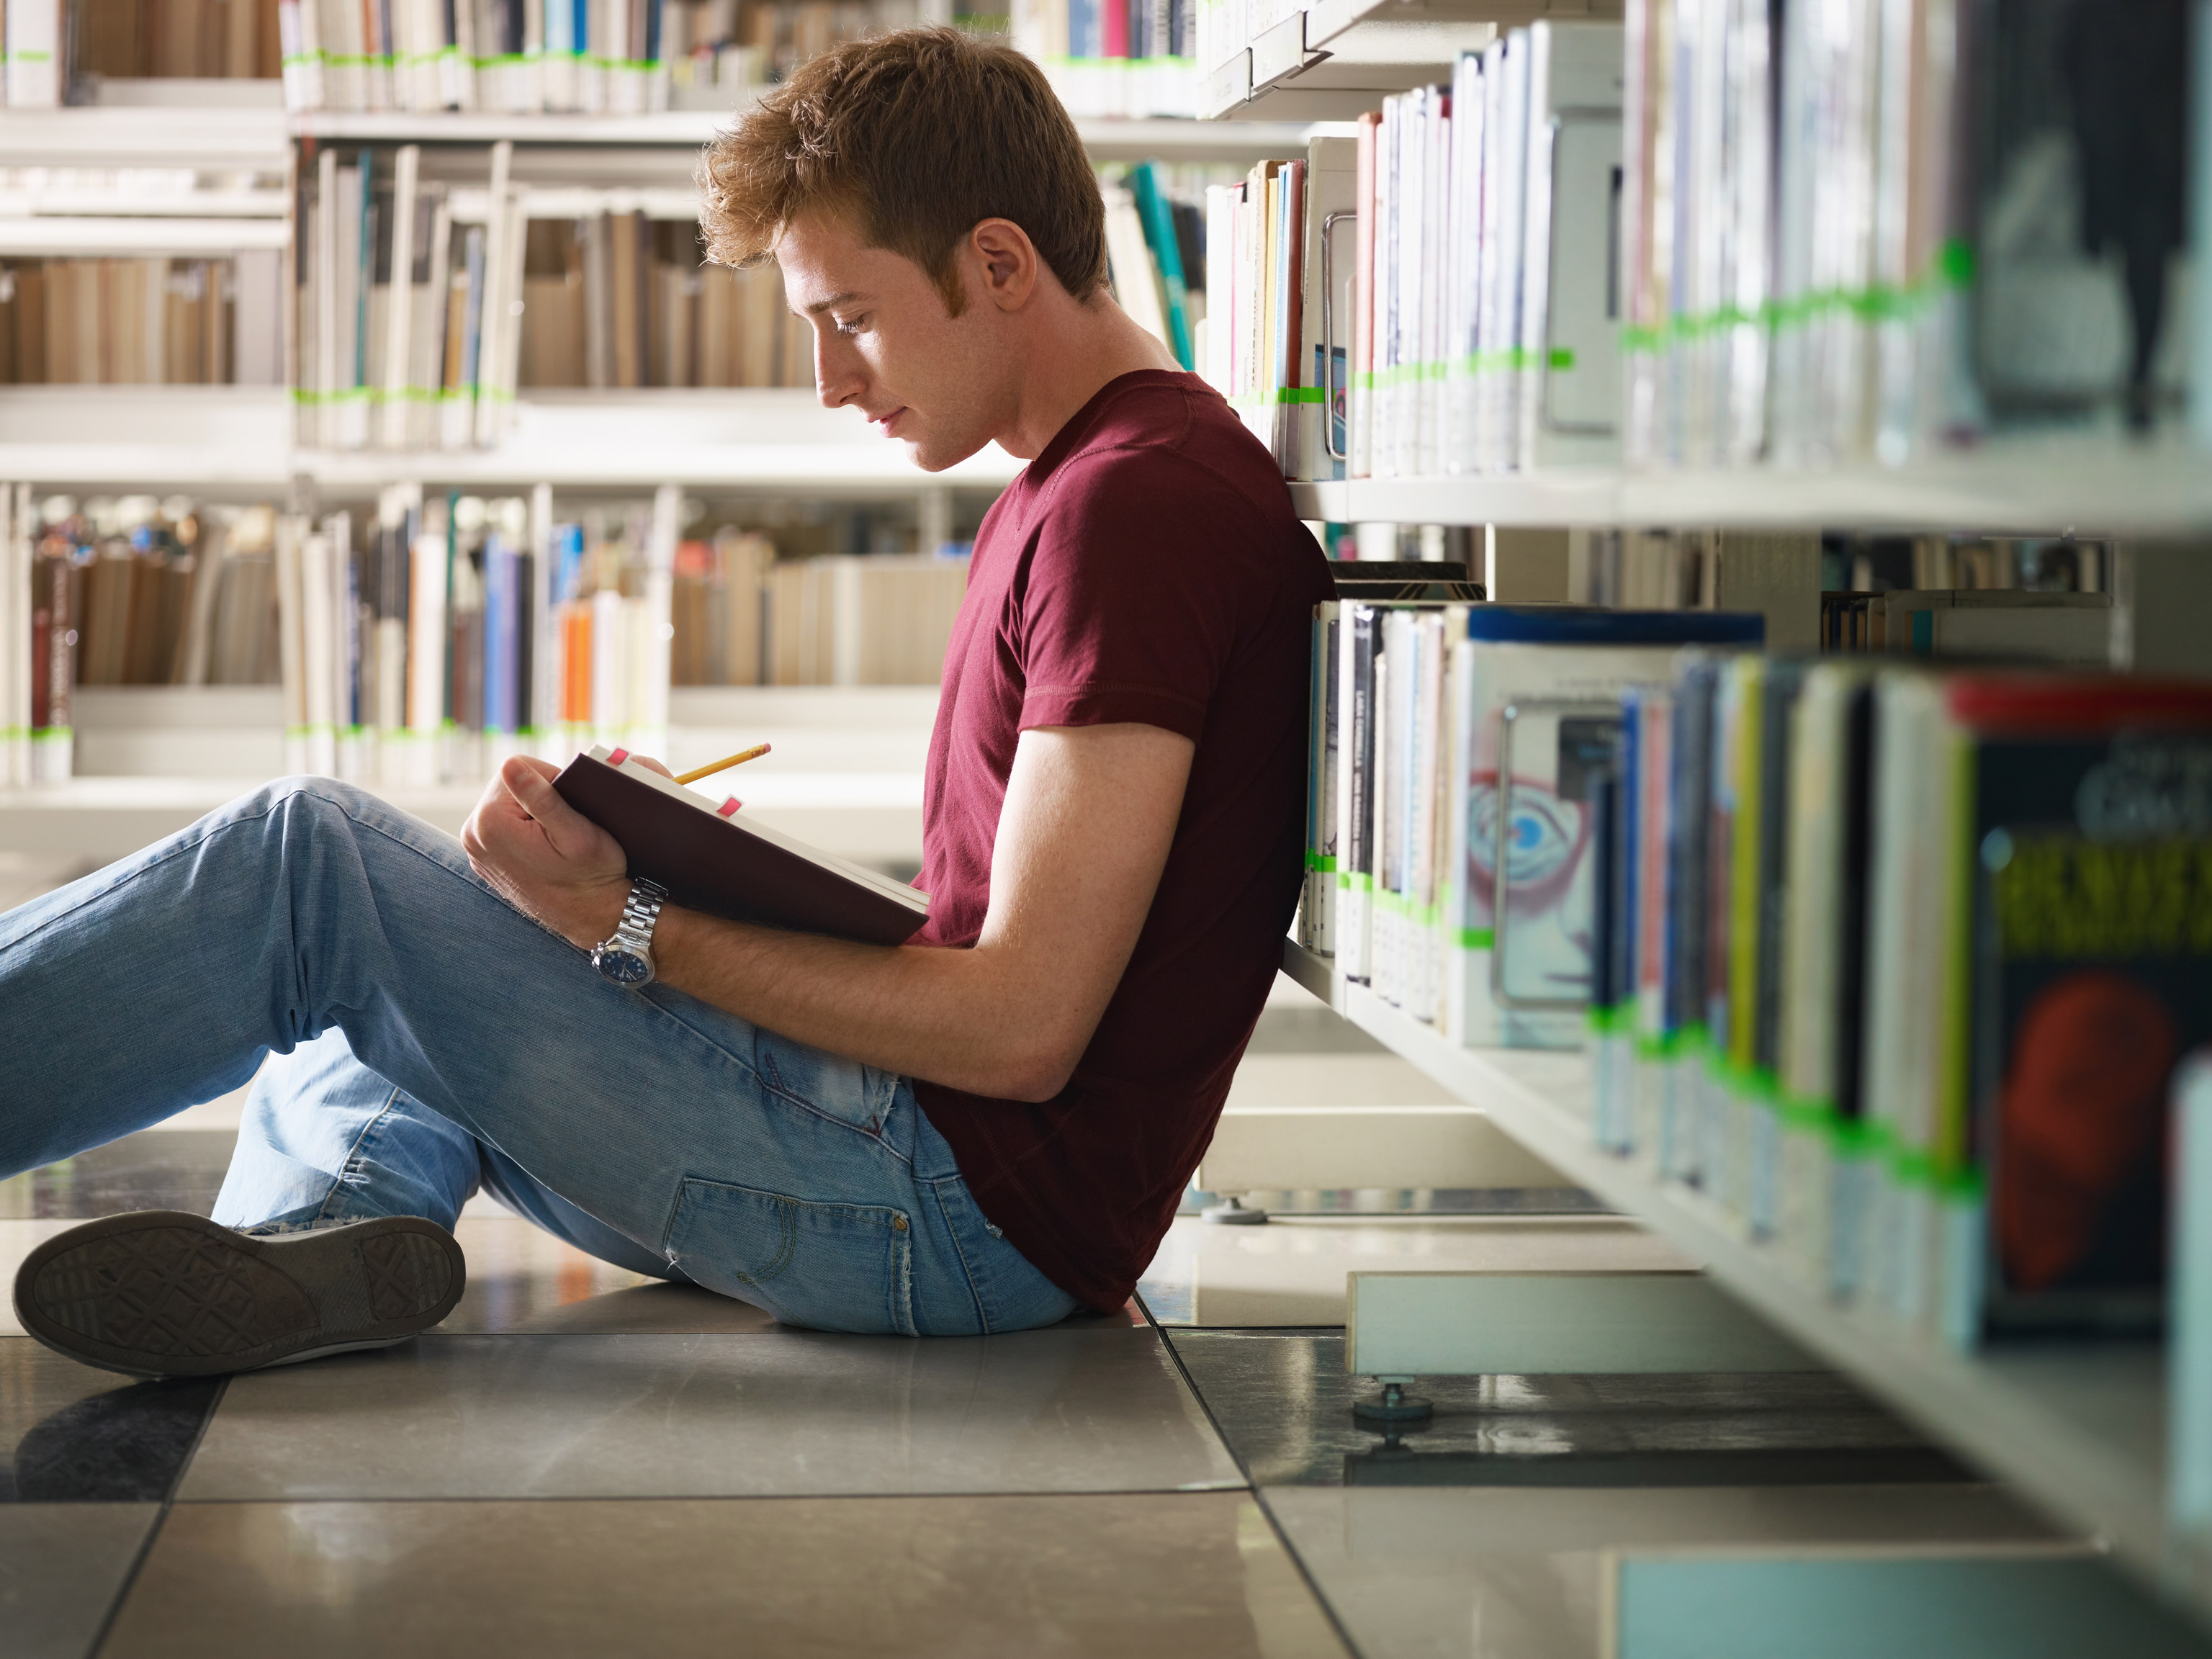 College student sitting on floor in library and reading